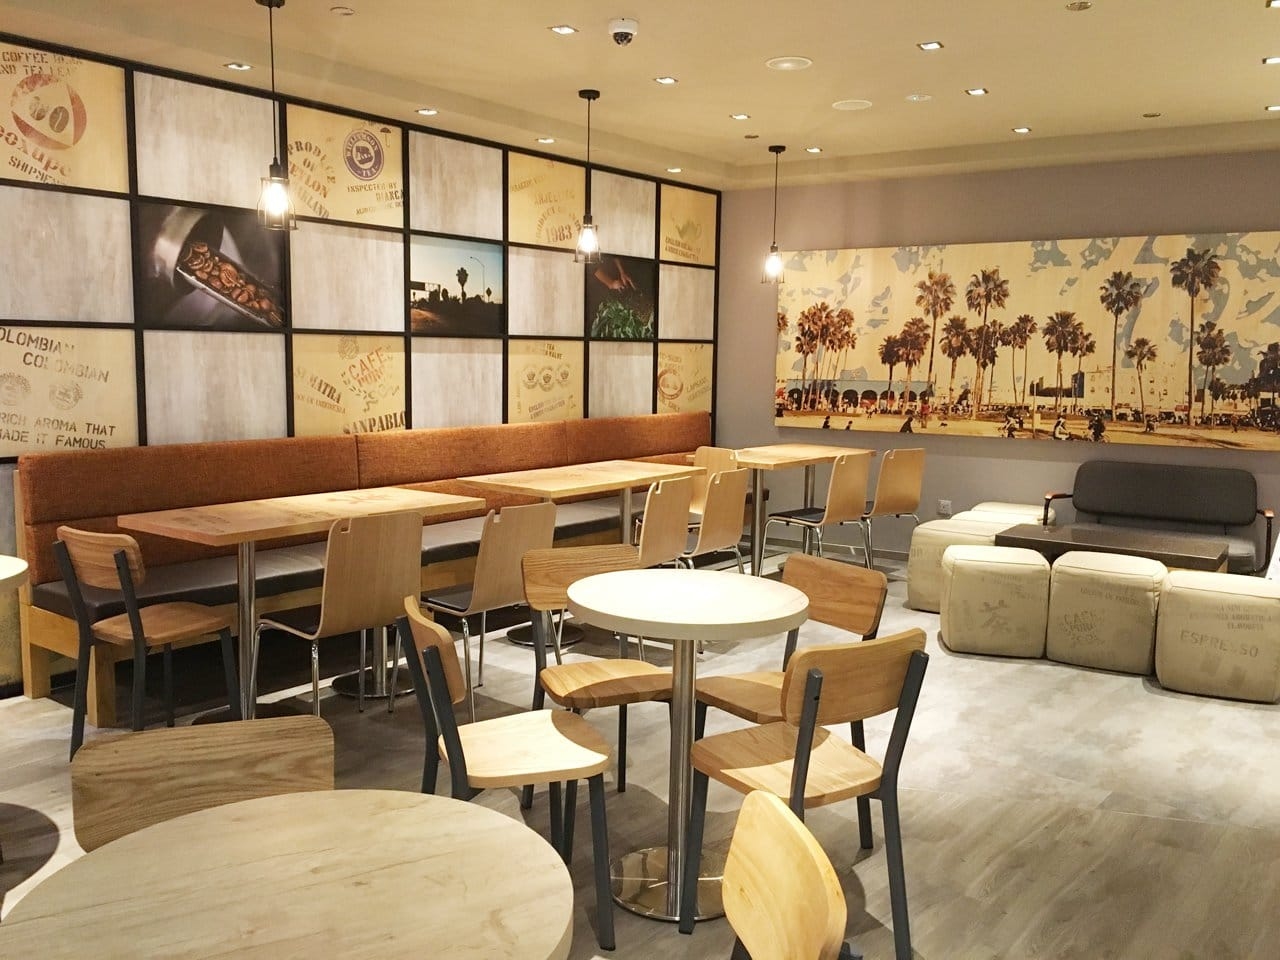 Coffee Bean - Centrepoint | Product Seen: [Toyo Chair – Wood + Epoxy, Swiss Chair], Astro 2 Seater Sofa & Customized Laminate Tabletop + Traxtor Round Table Base]<br />